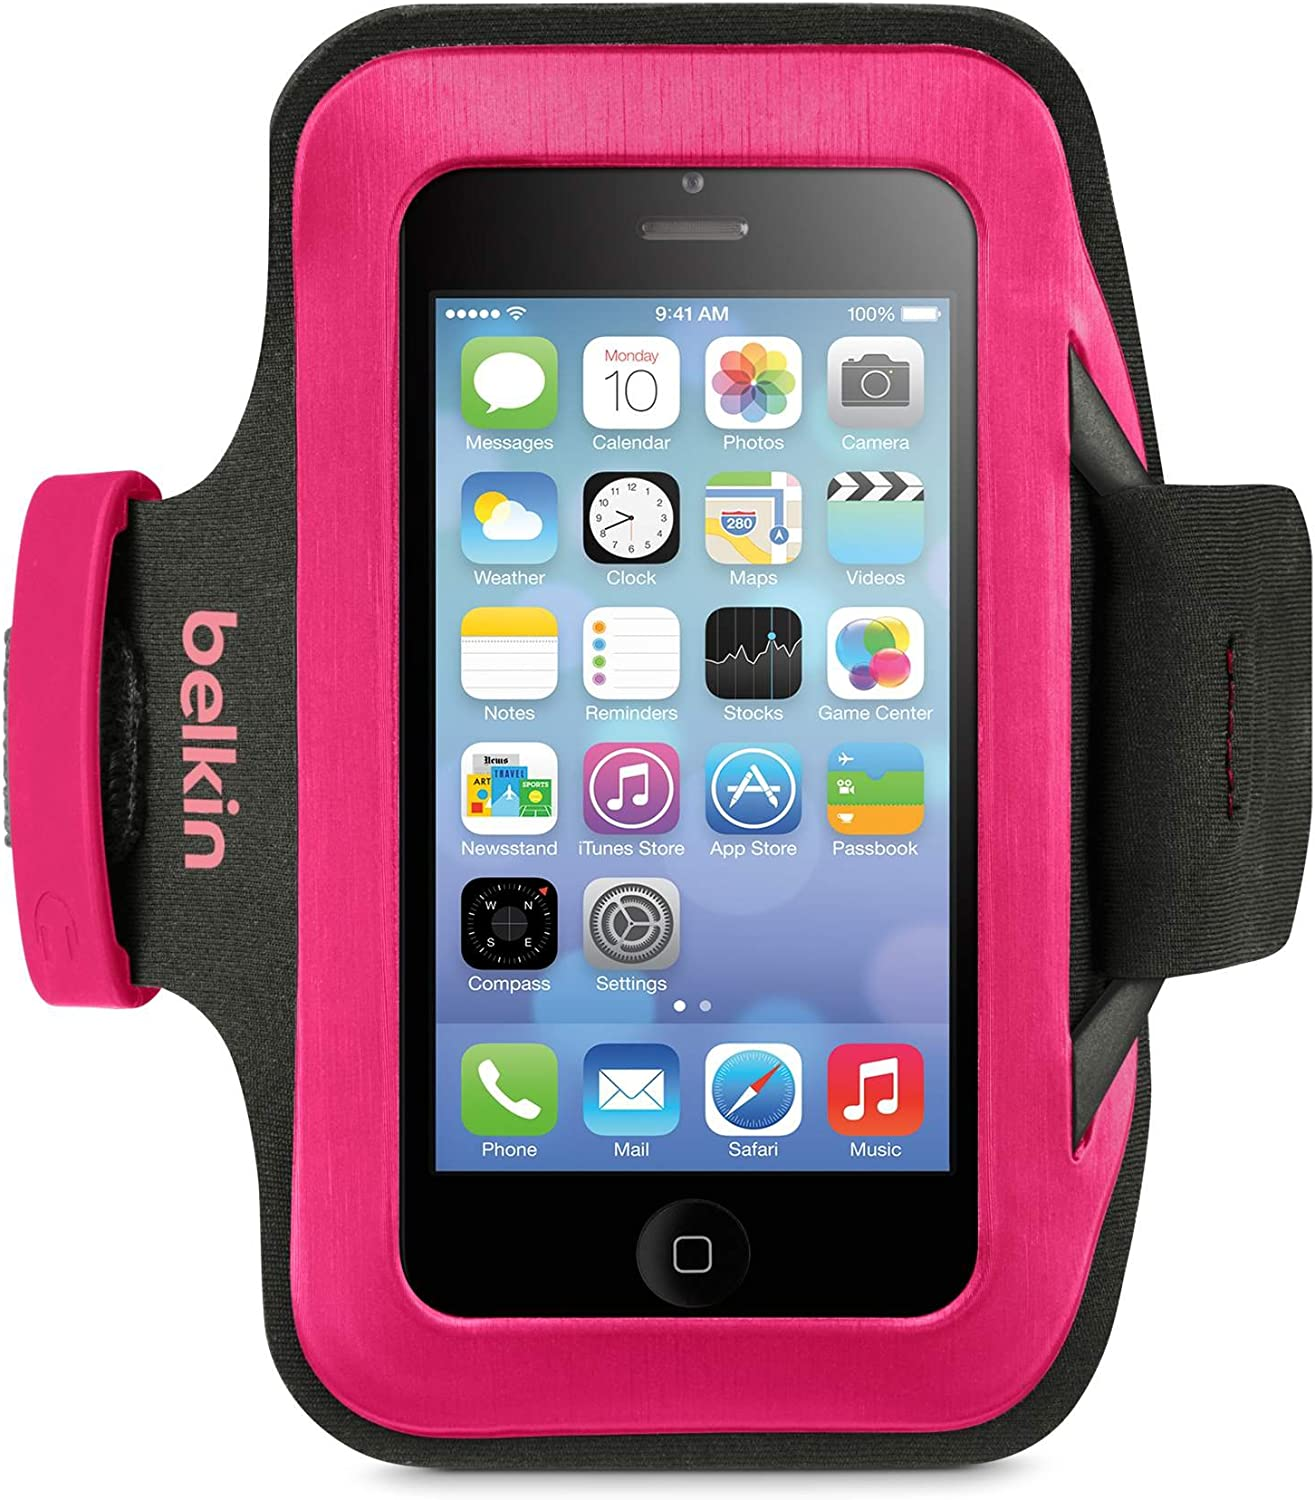 Belkin Slim-Fit Armband for iPhone 5, 5S, 5C and iPod touch 5G - Retail Packaging - Sorbet